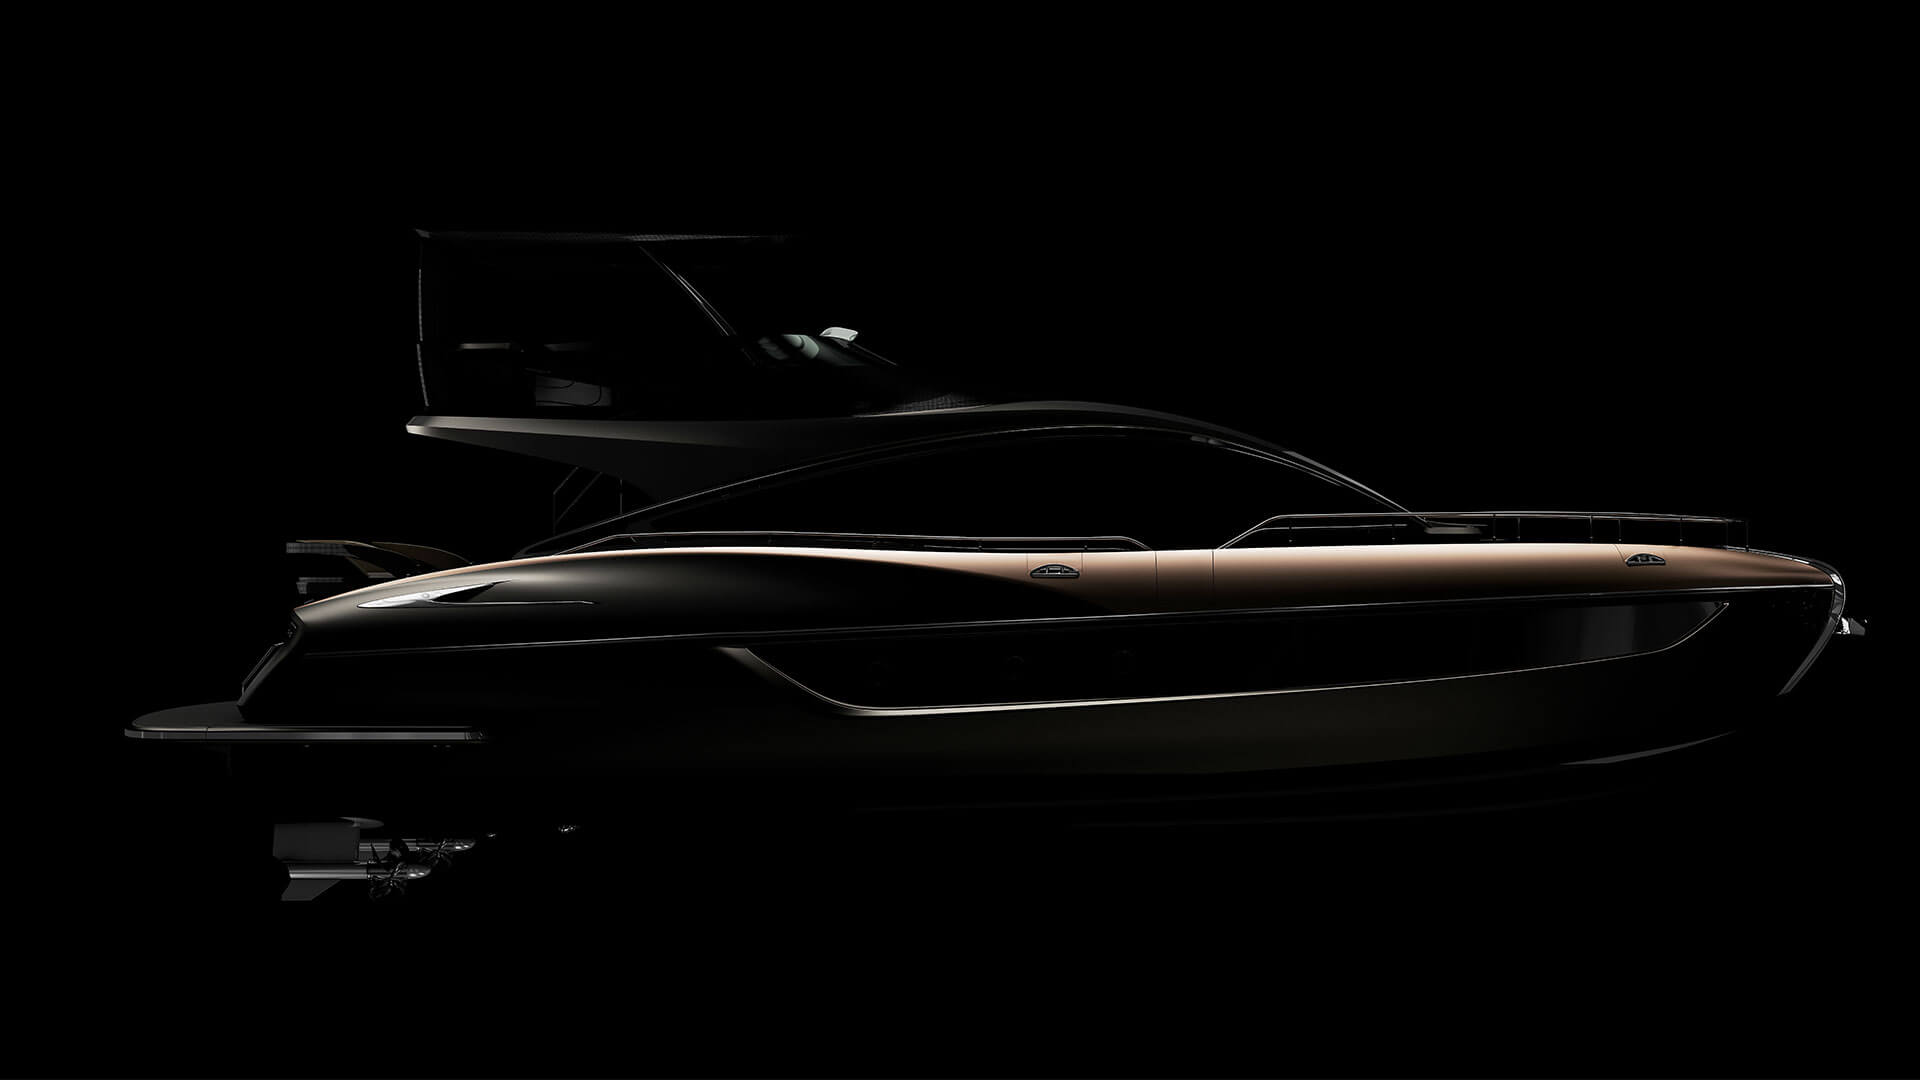 2019 lexus ly 650 luxury yacht gallery 09